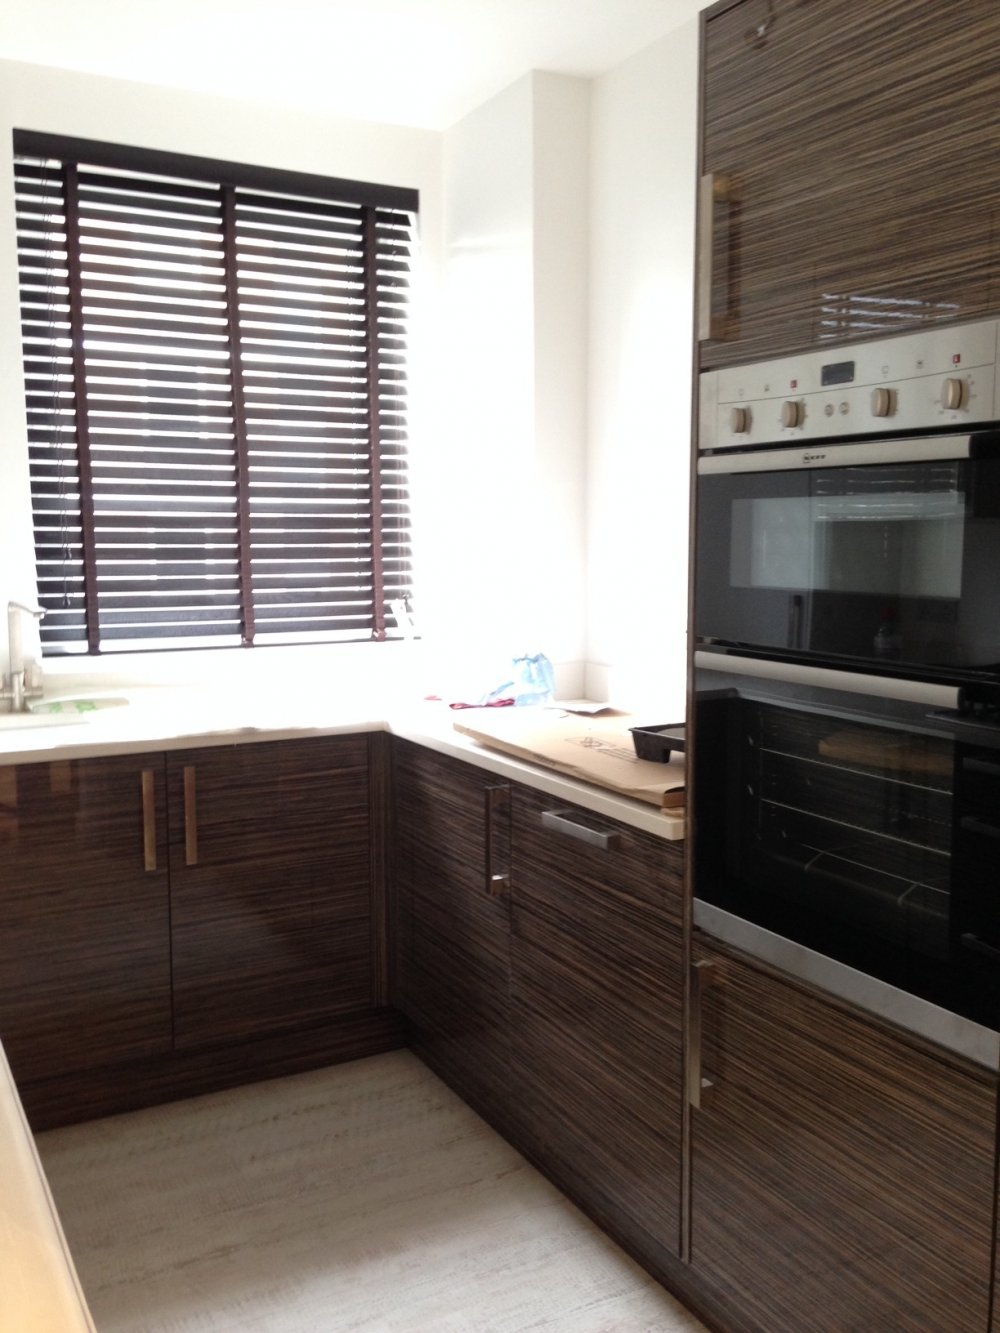 Wood venetian blind with matching tape for kitchen window